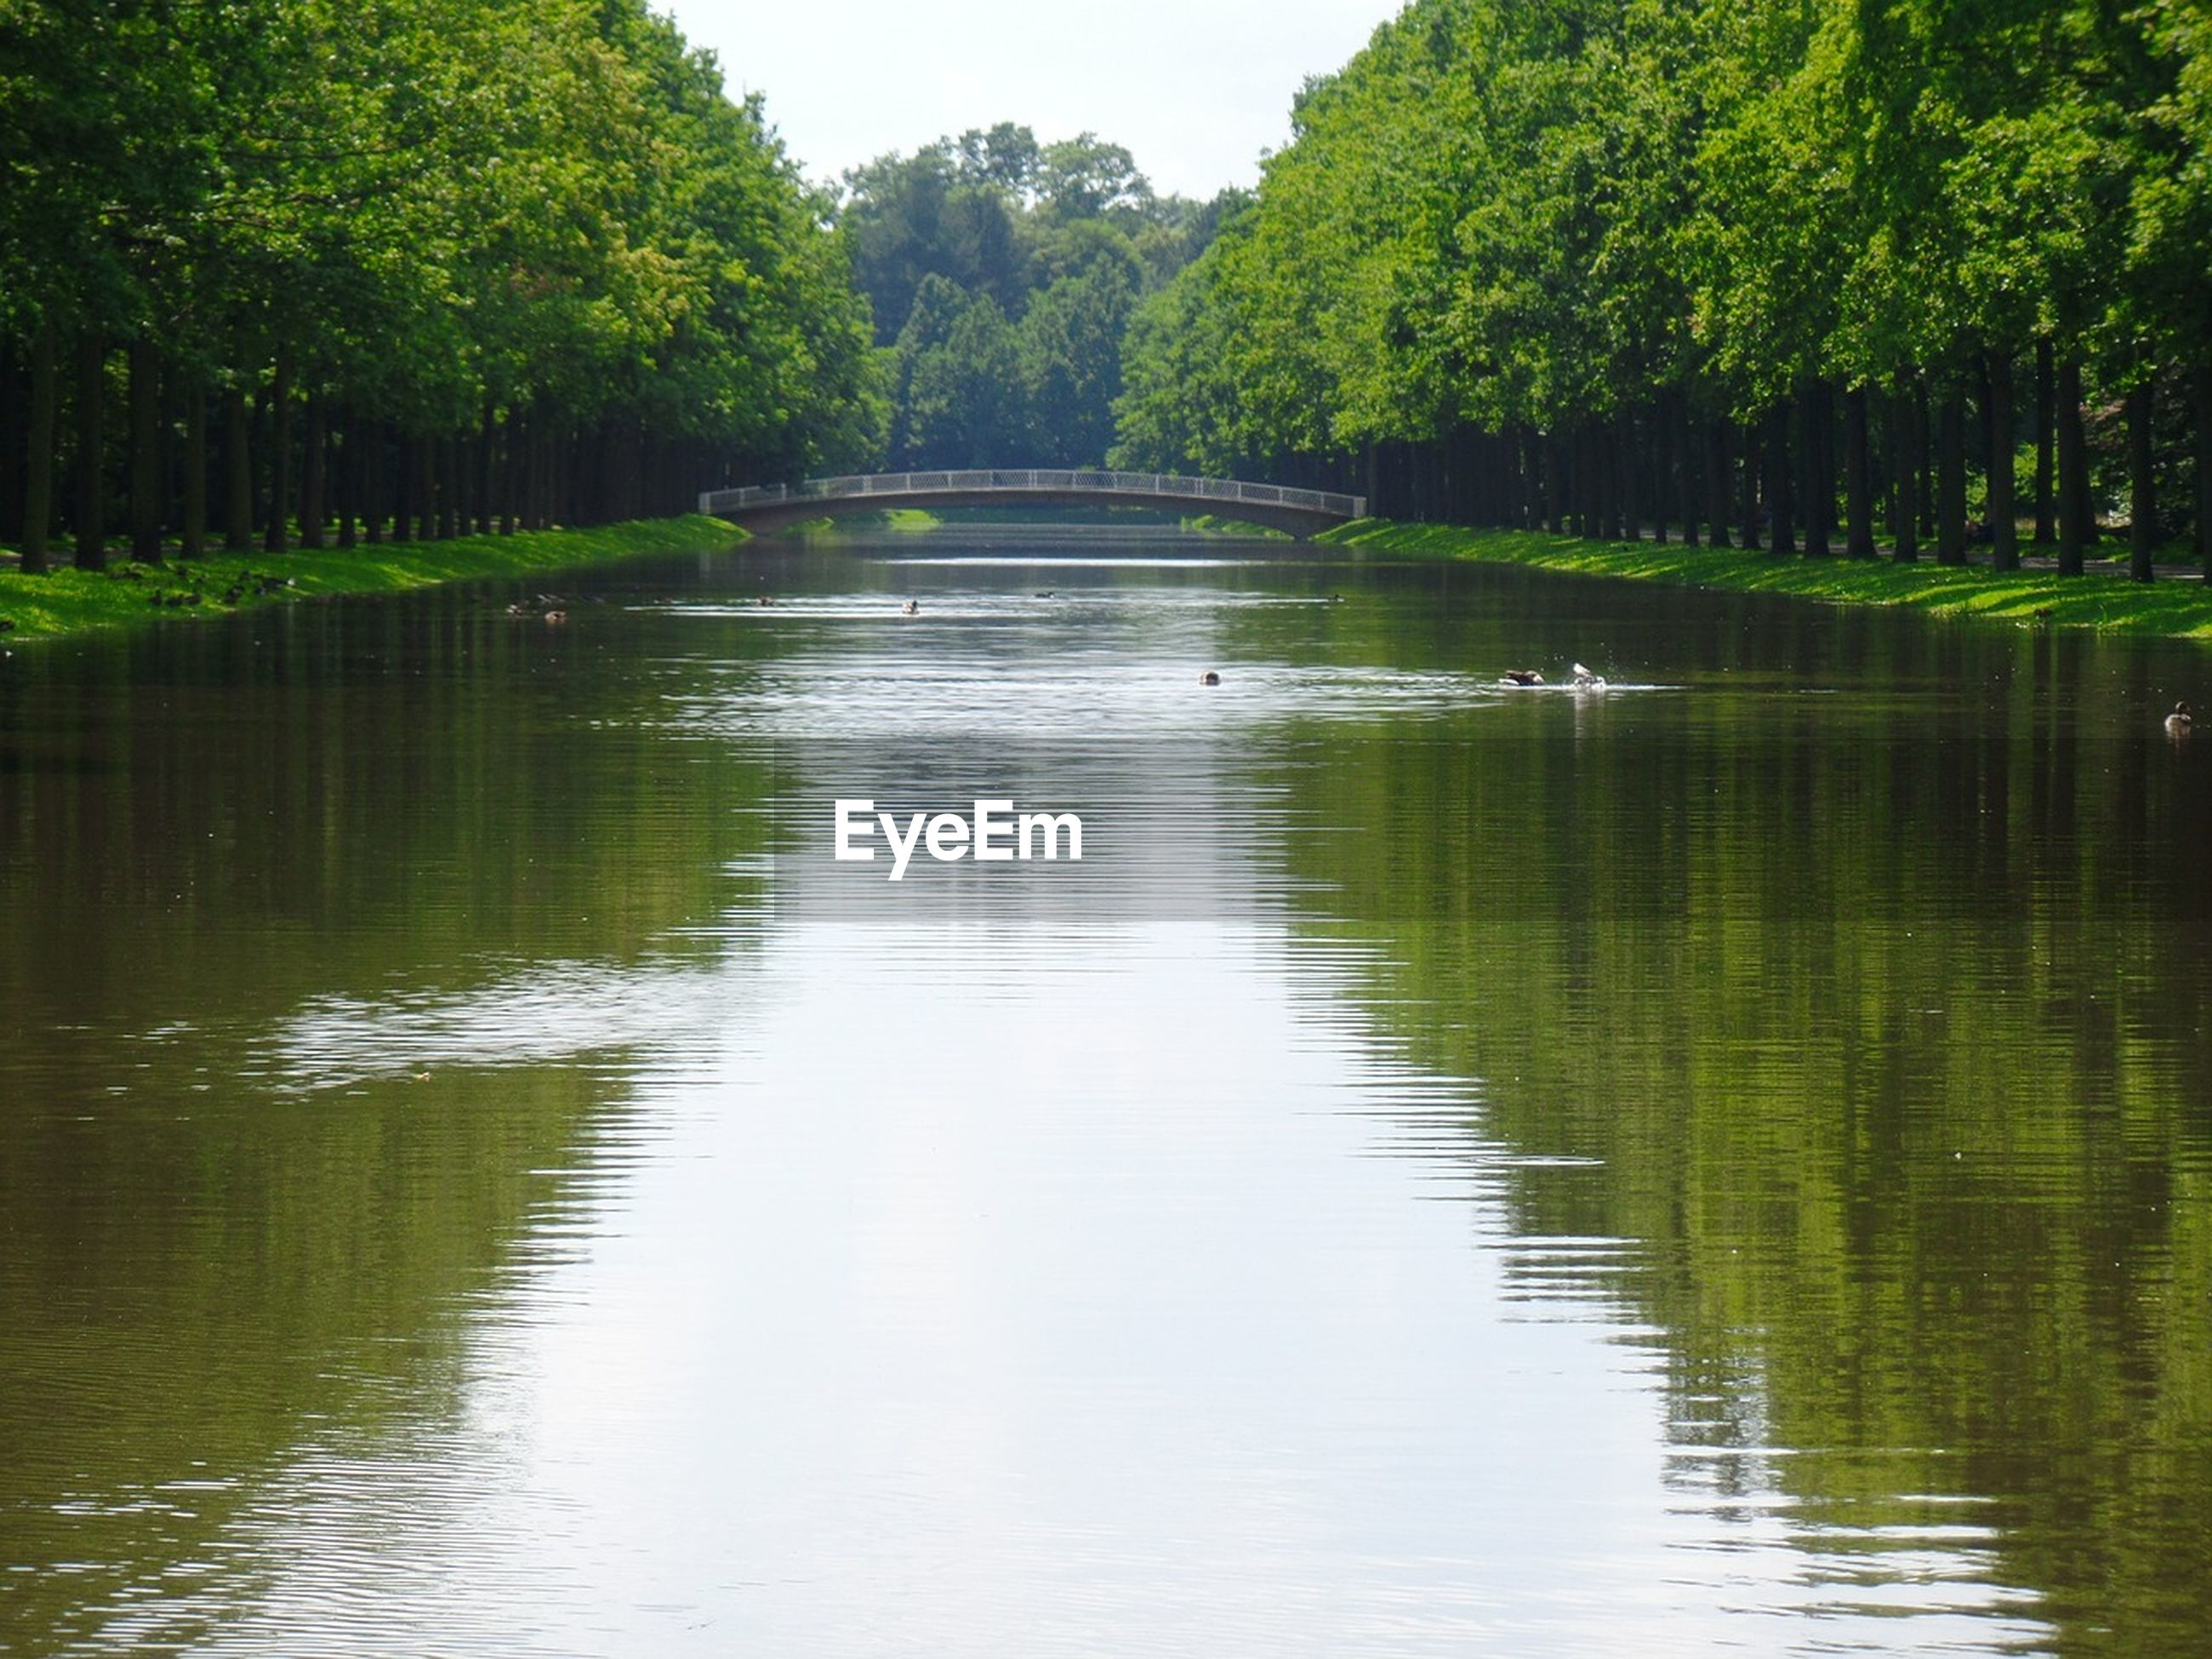 SCENIC VIEW OF LAKE WITH TREES IN BACKGROUND